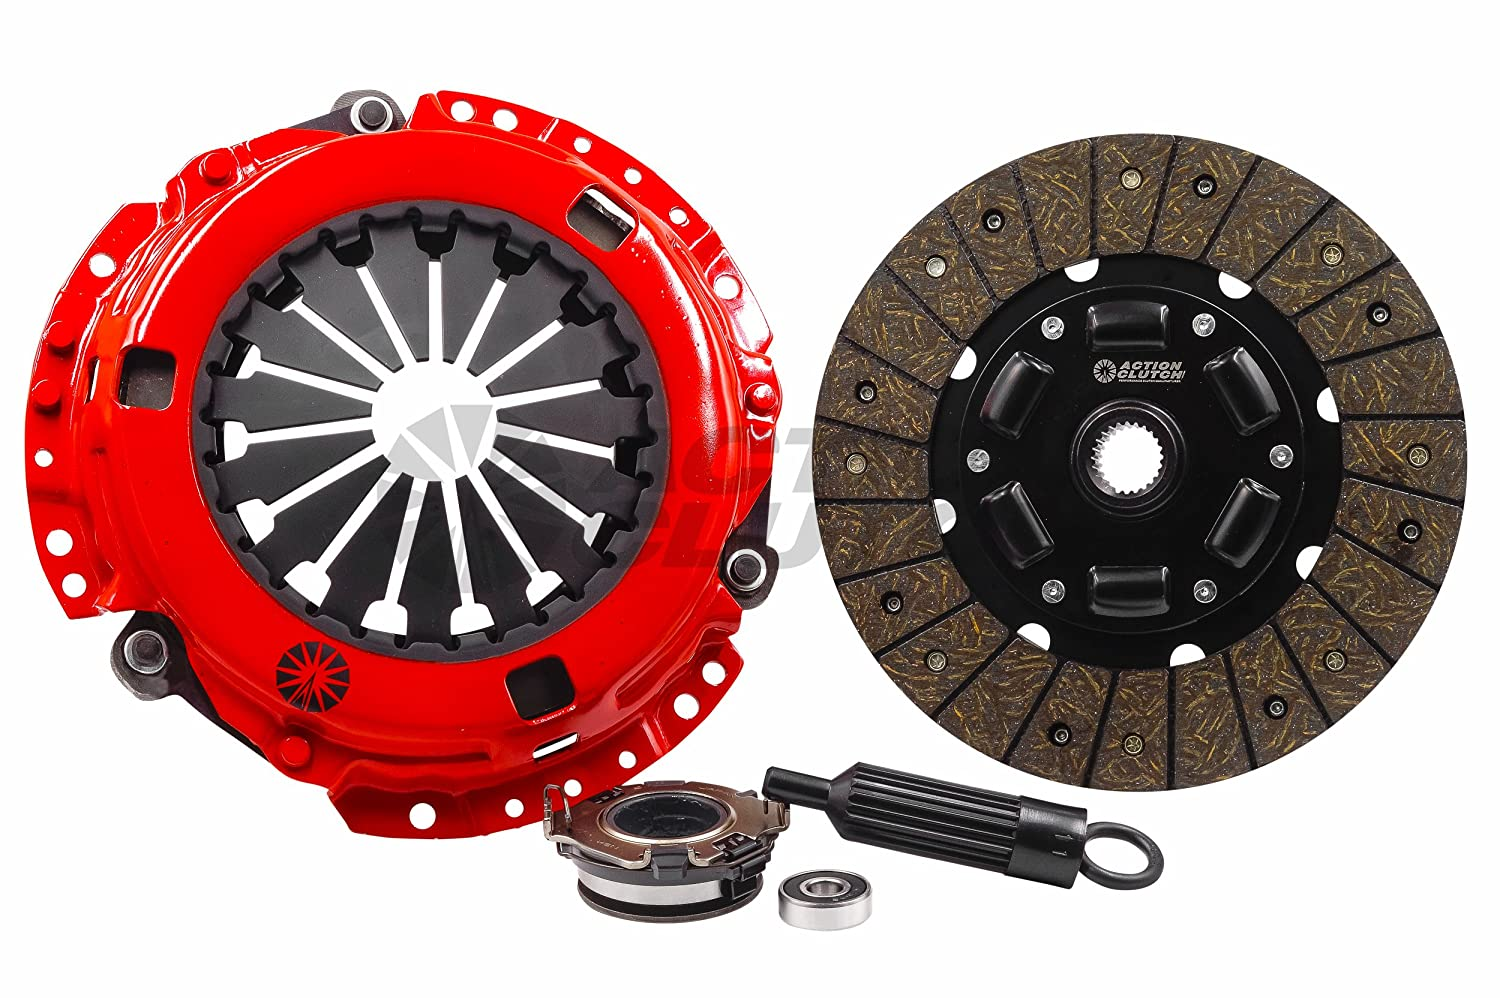 Amazon.com: Stage 1 OS (Organic Sprung) Honda Civic SI 2012-2014 2.4L 6SPD Includes Lightened Fywheel clutch kit: Automotive